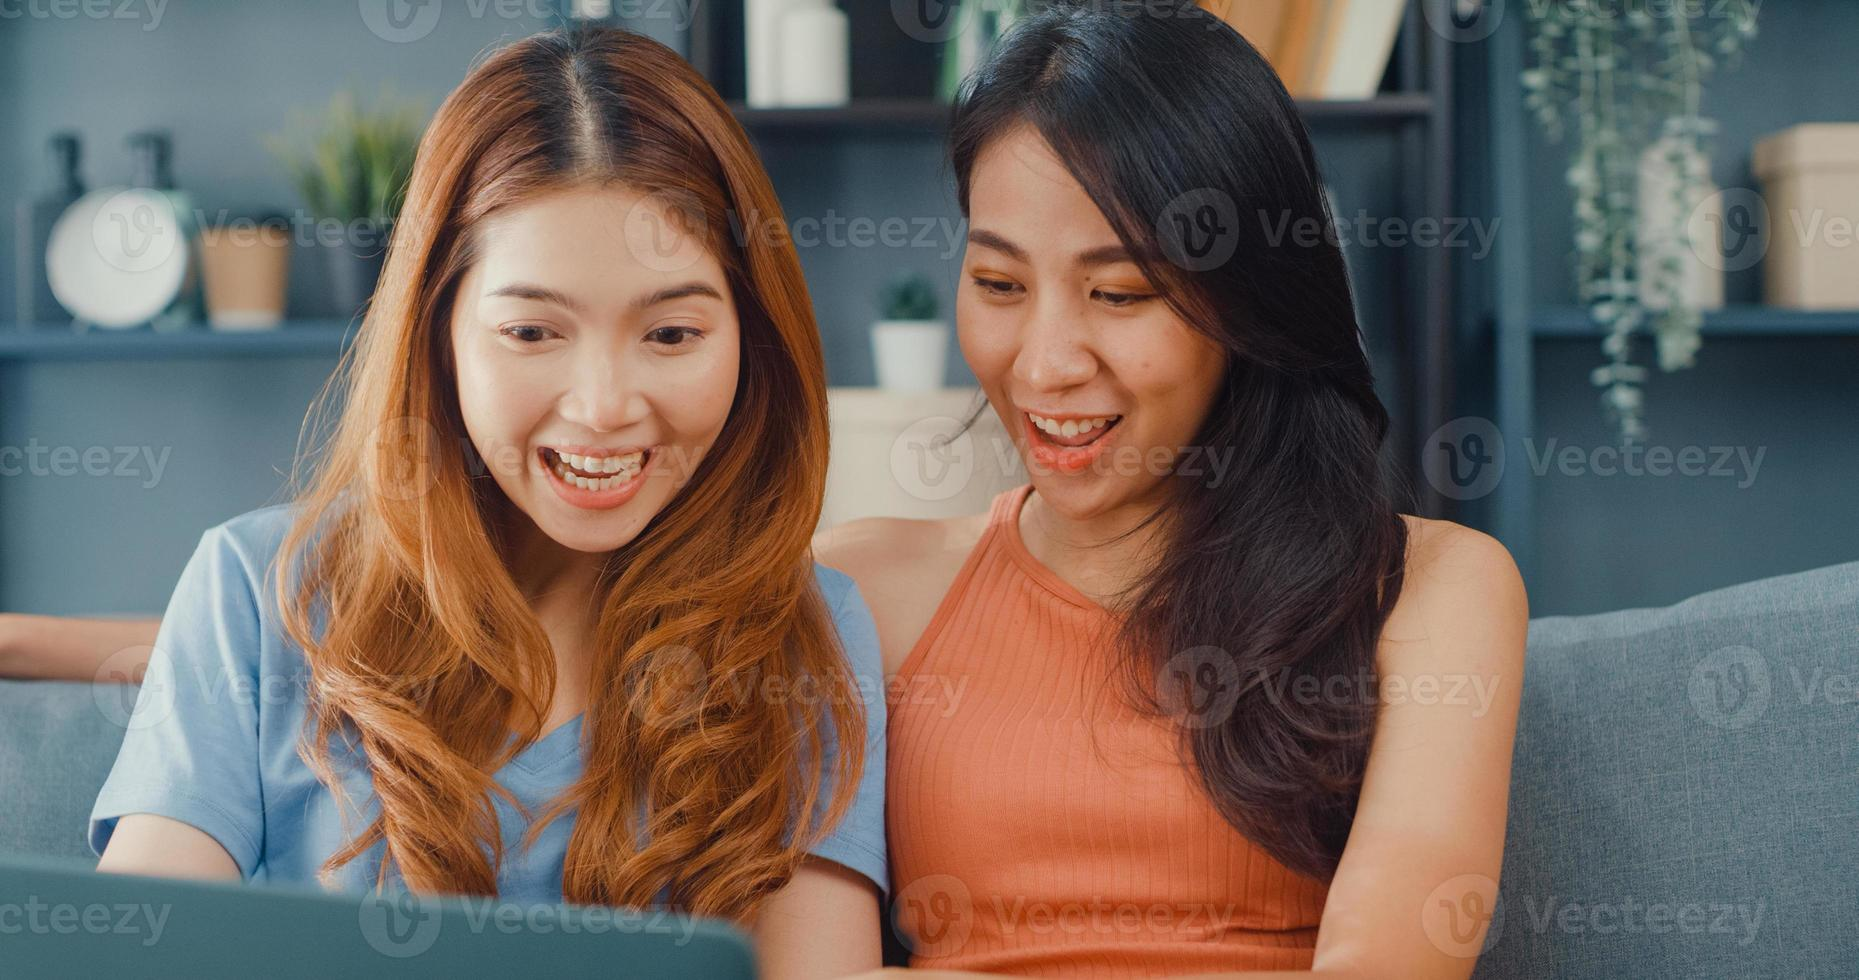 Two Asia lesbian women site on couch together looking at laptop screen in living room at home together. Happy couple roommate ladies enjoy web surfing online shopping, Lifestyle woman at home concept. photo